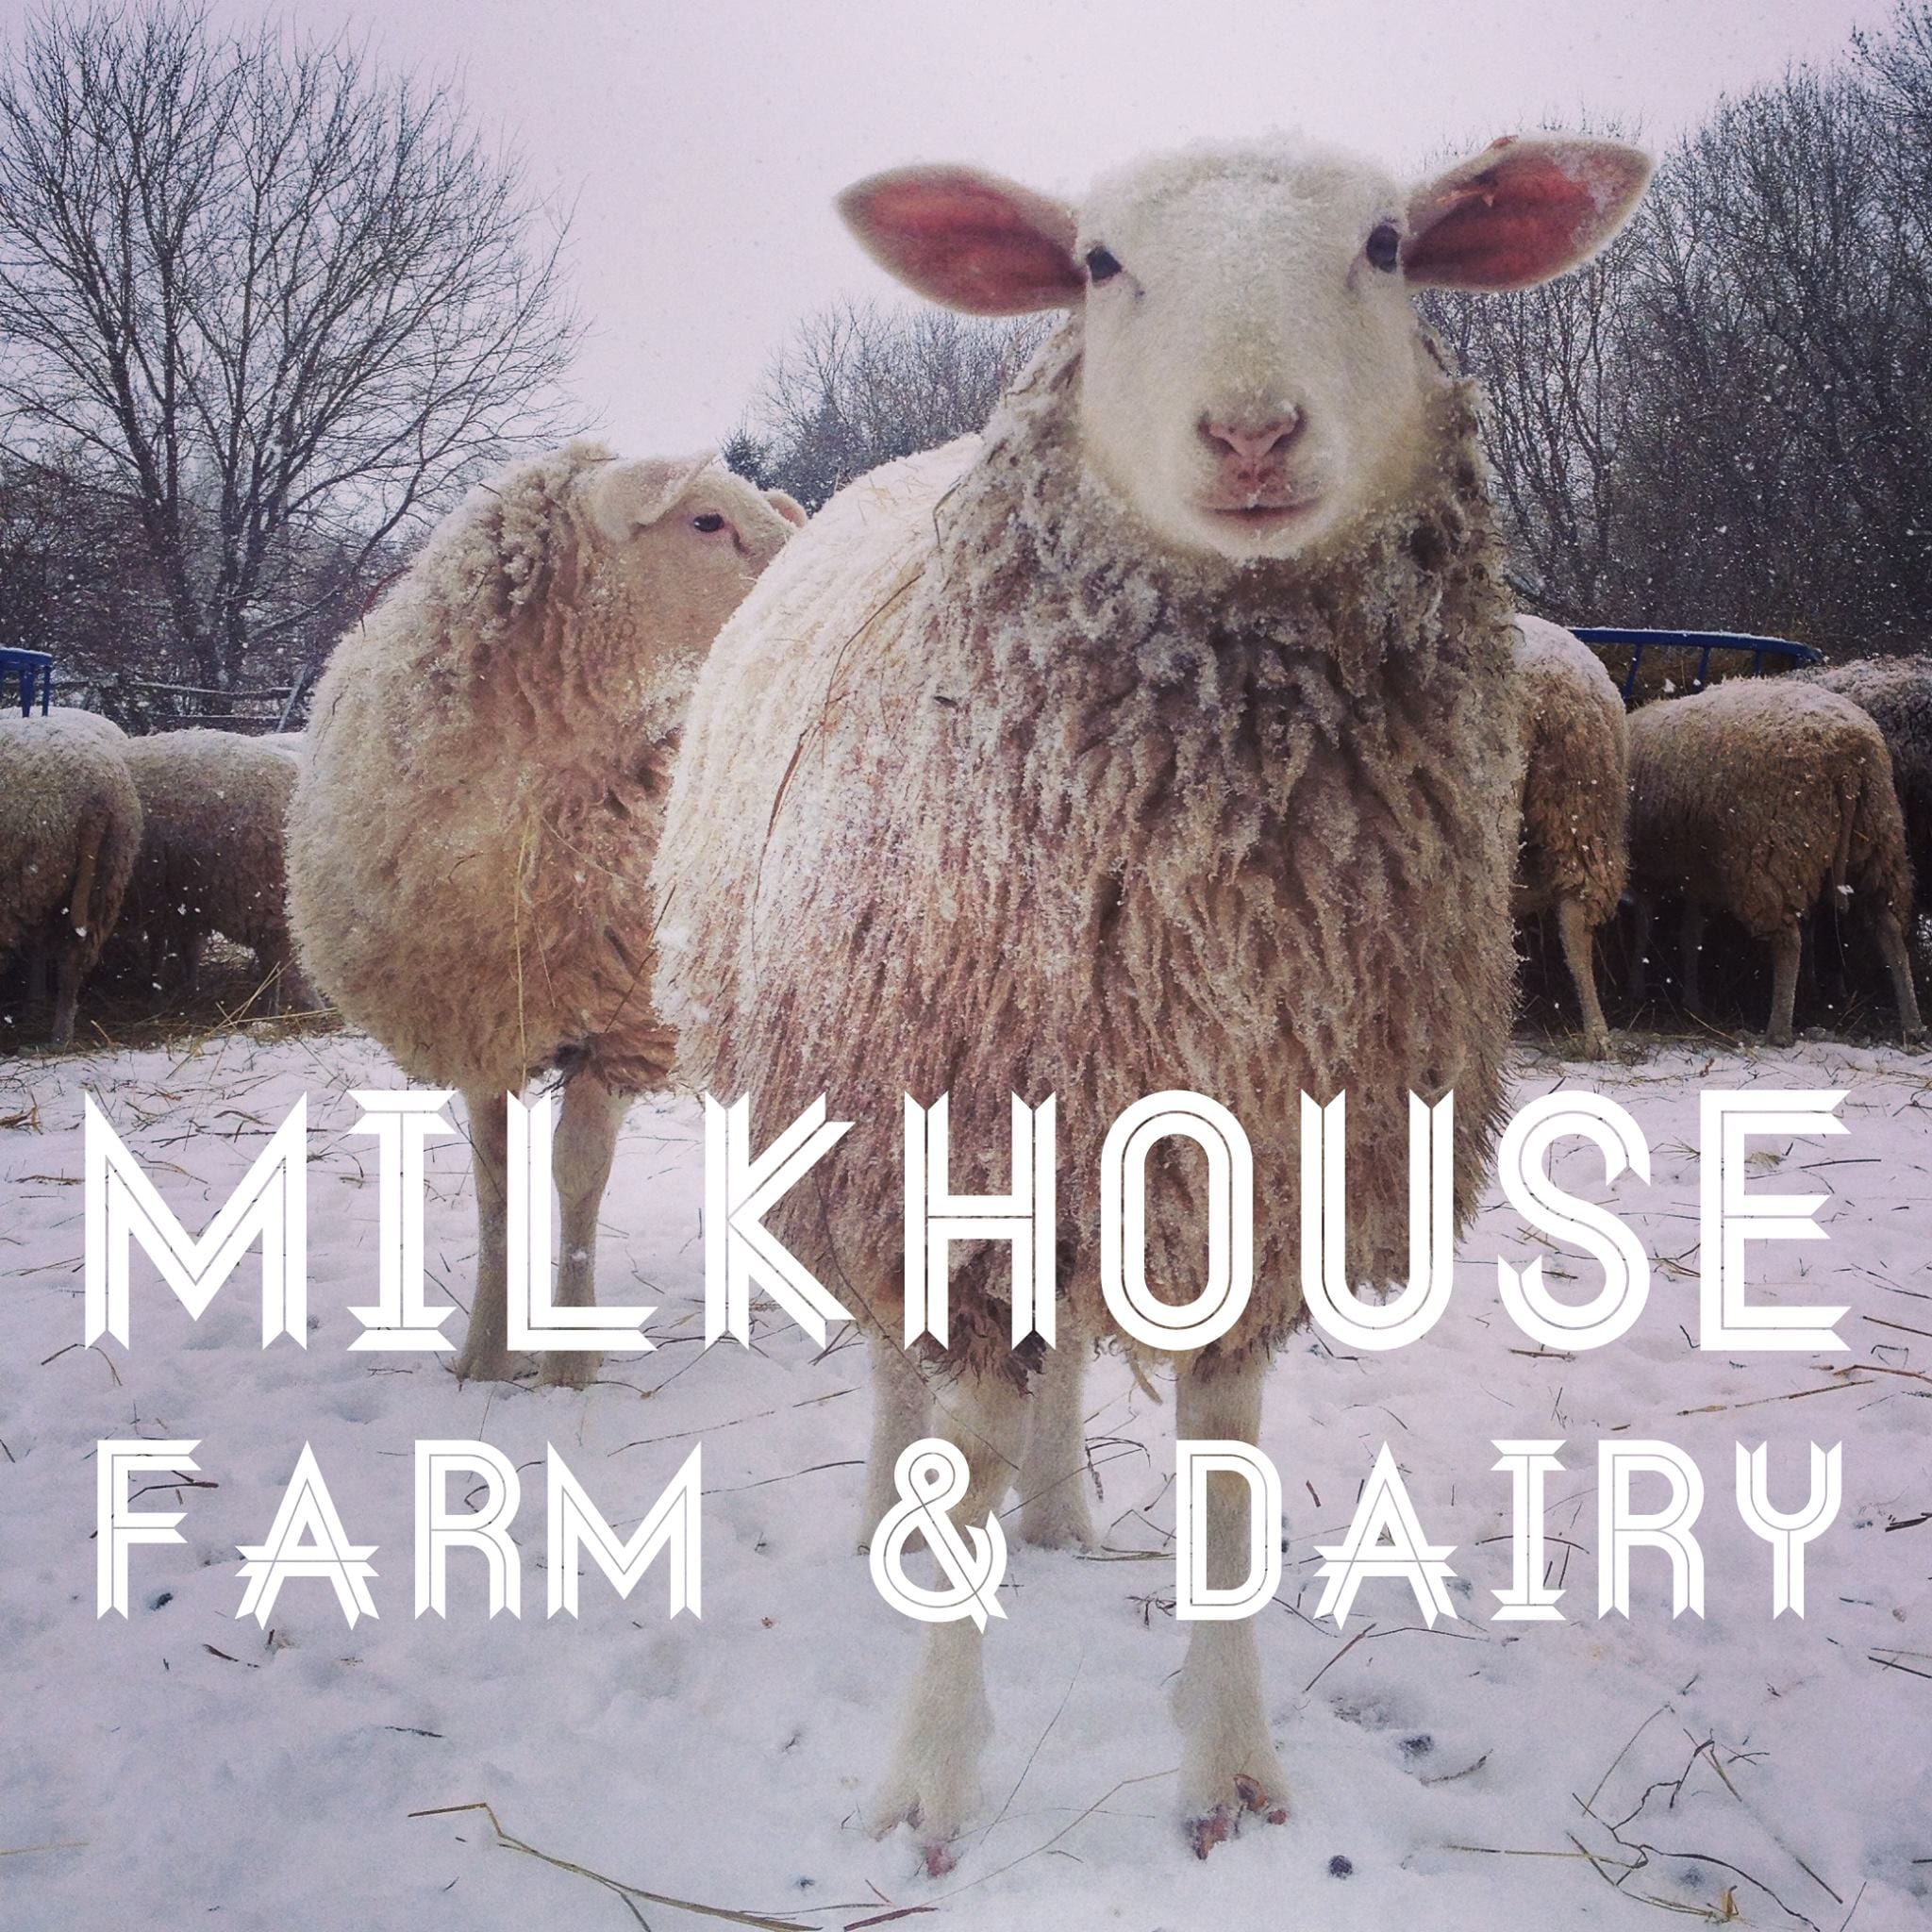 Cheese Factories sheep Milkhouse Farm & Dairy Smiths Falls Ontario Canada Ulocal Local Product Local Purchase